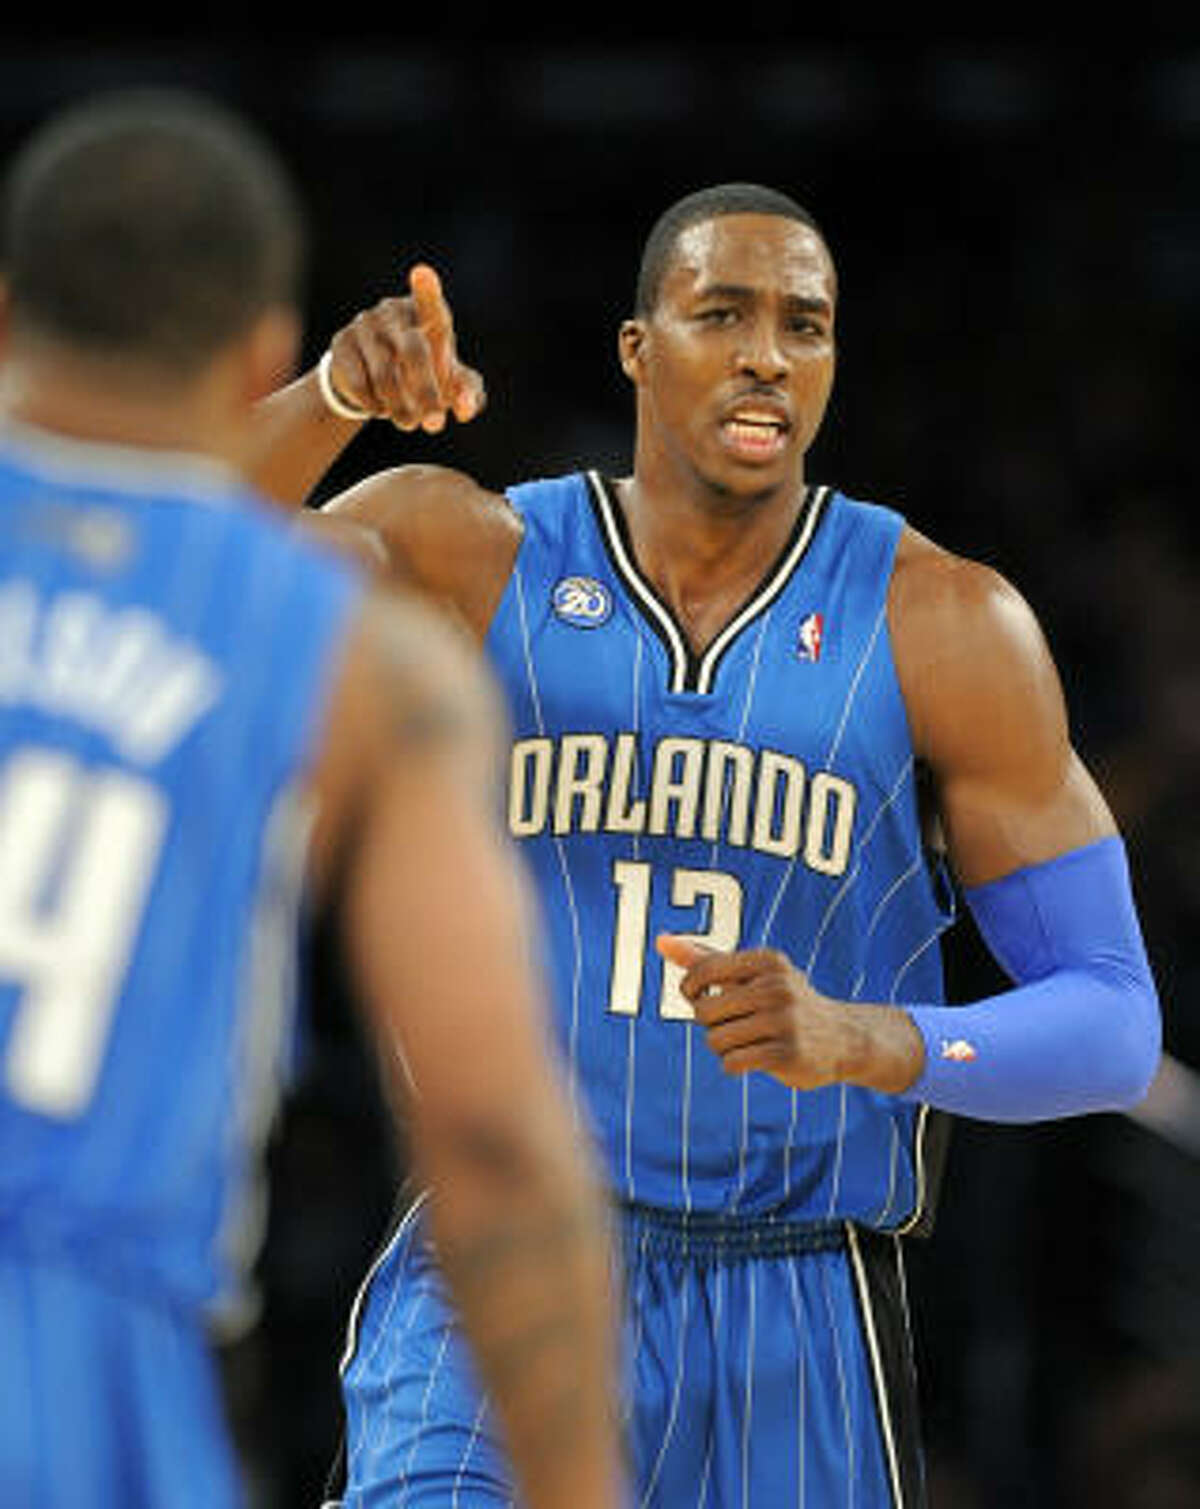 1 - ORLANDO MAGIC - (Last wk: 3) - 33-9 - Raise your hand if you figured the Magic could go on a four-game through San Antonio, Sacramento, LA and Denver and return home without a loss? They also play better defense than most realize and could be a surprise survivor in June.